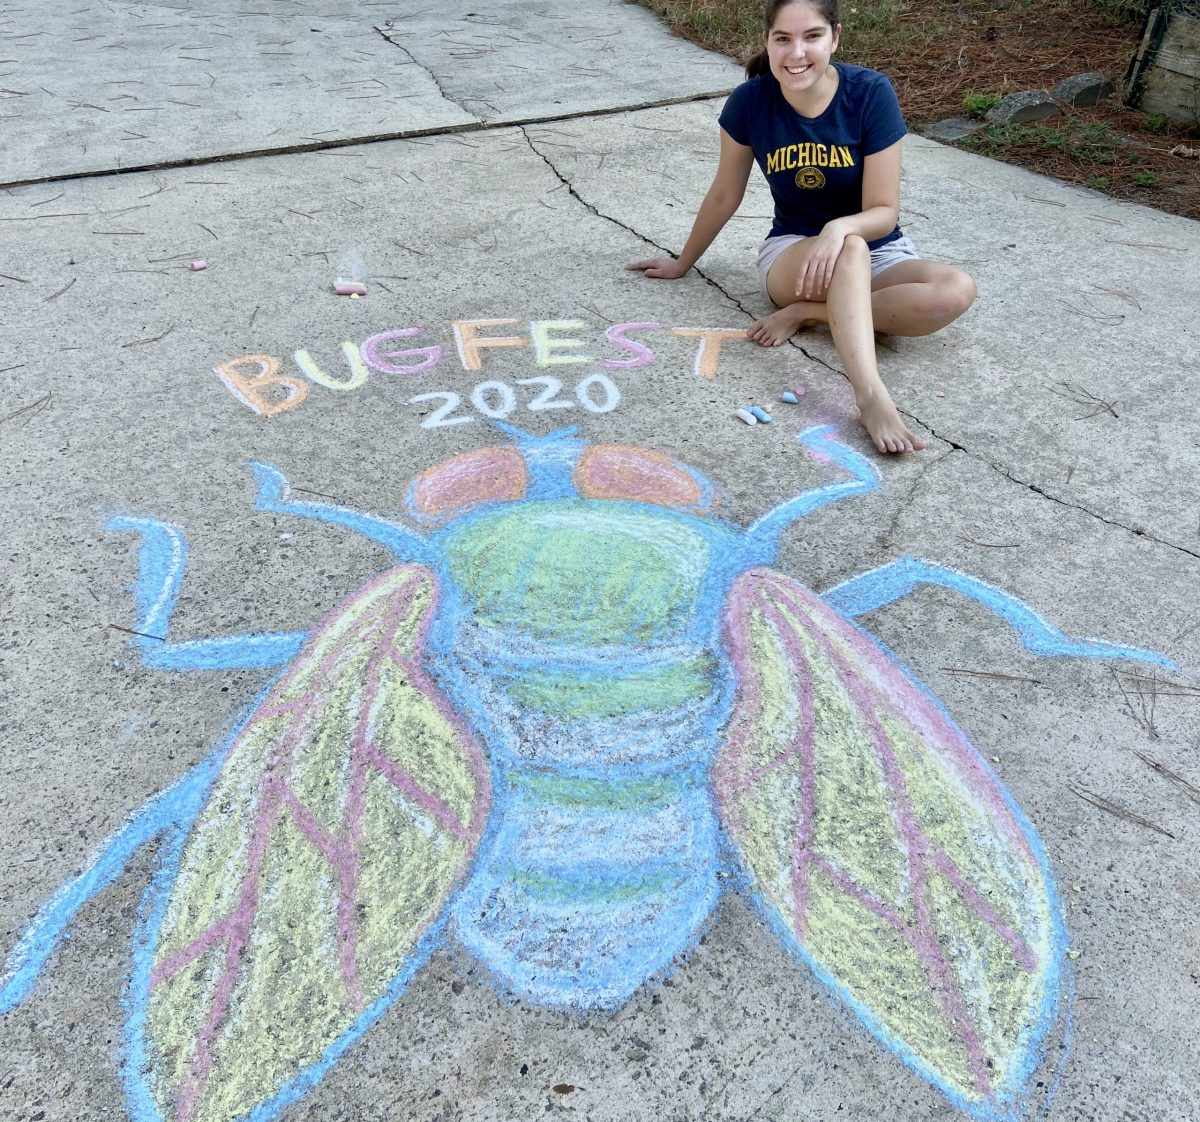 A beautiful fly drawn in chalk